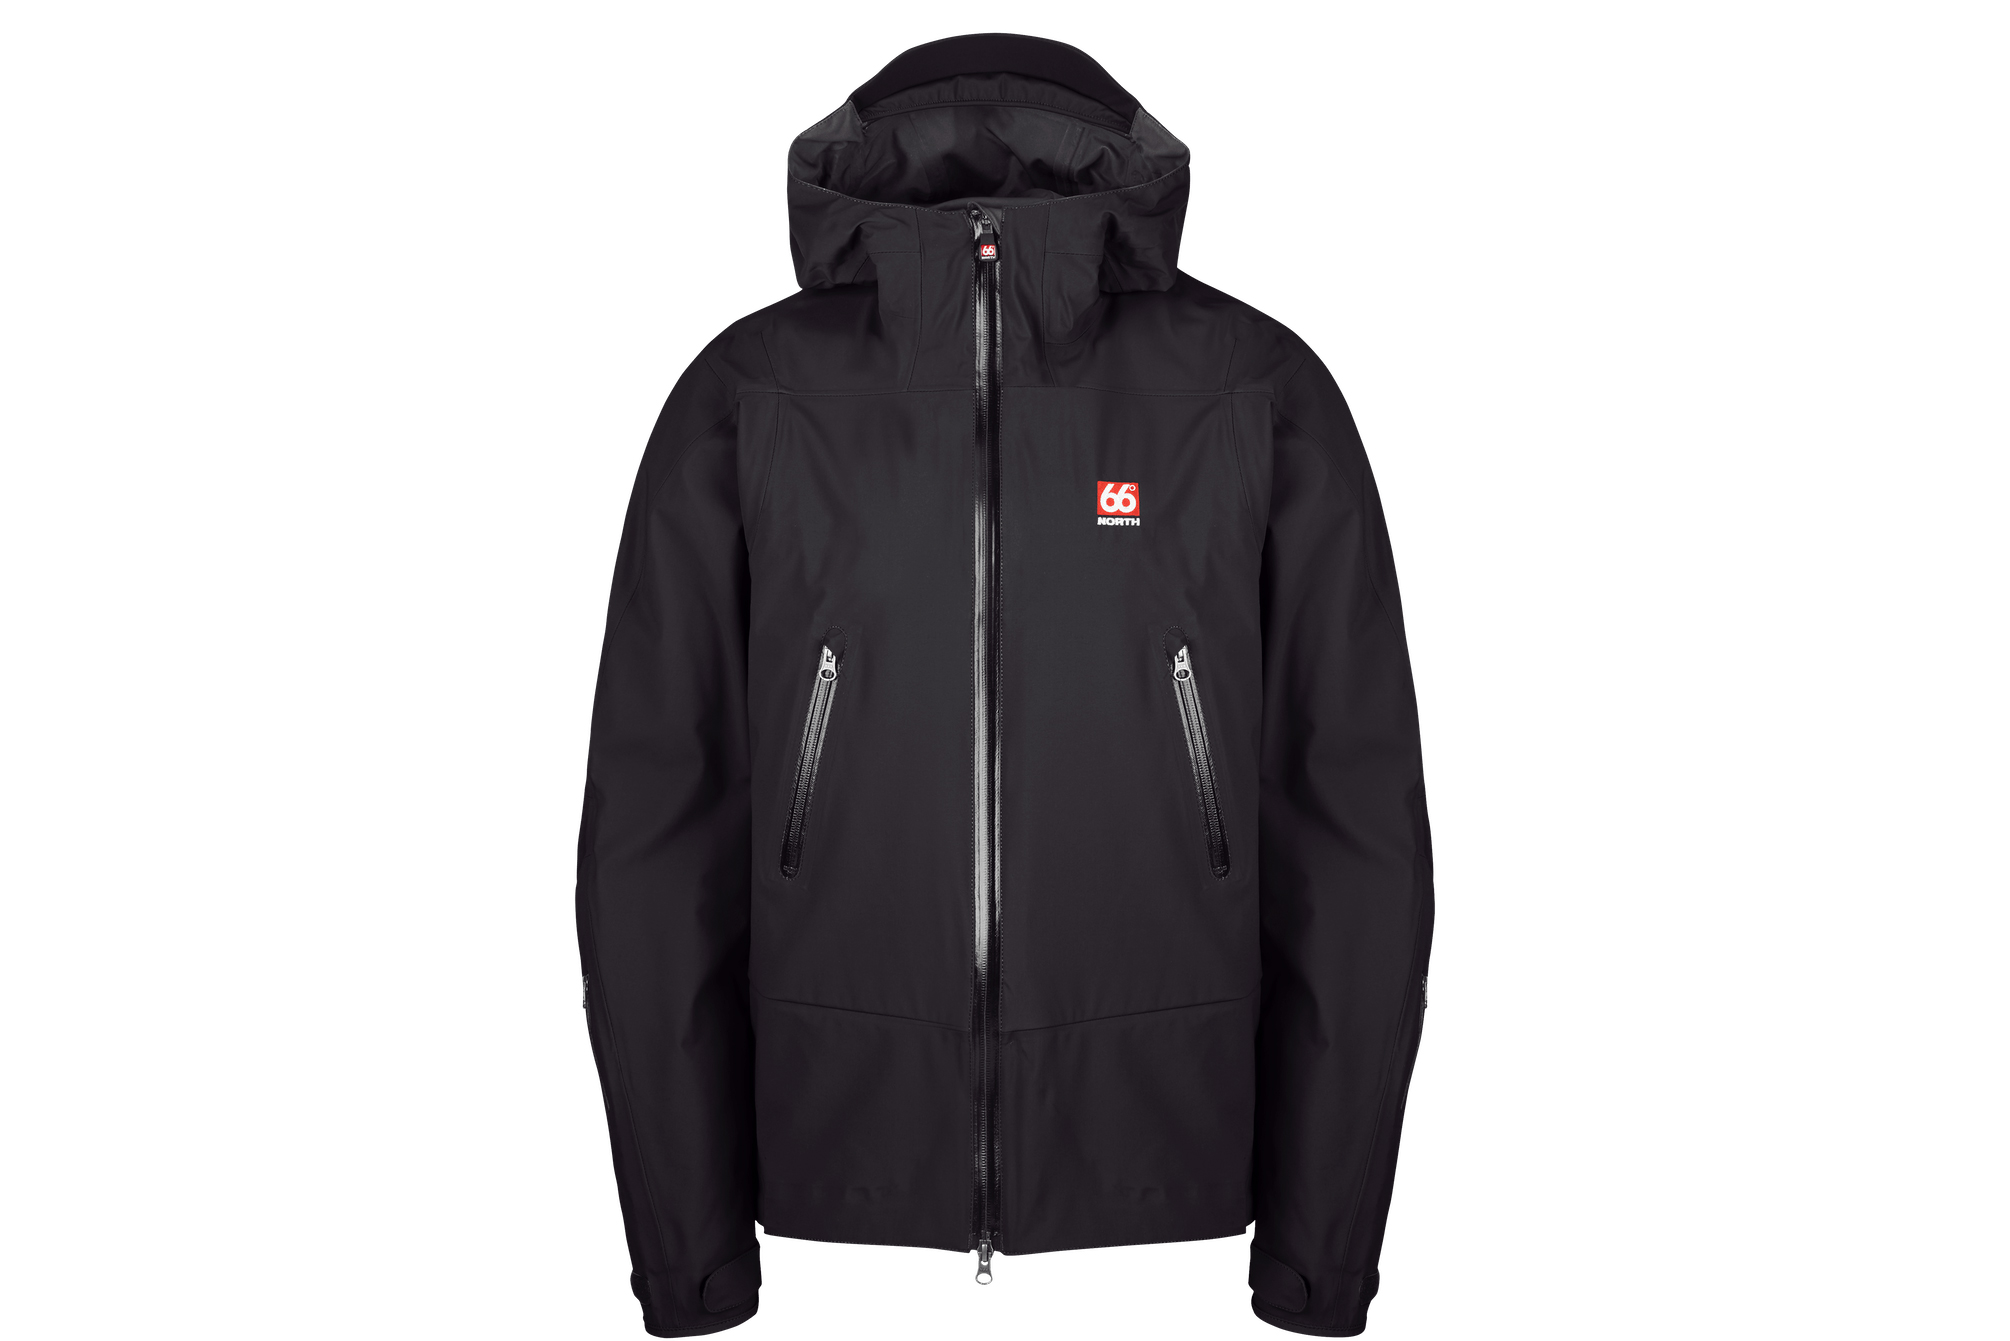 66 North Snaefell rain jacket